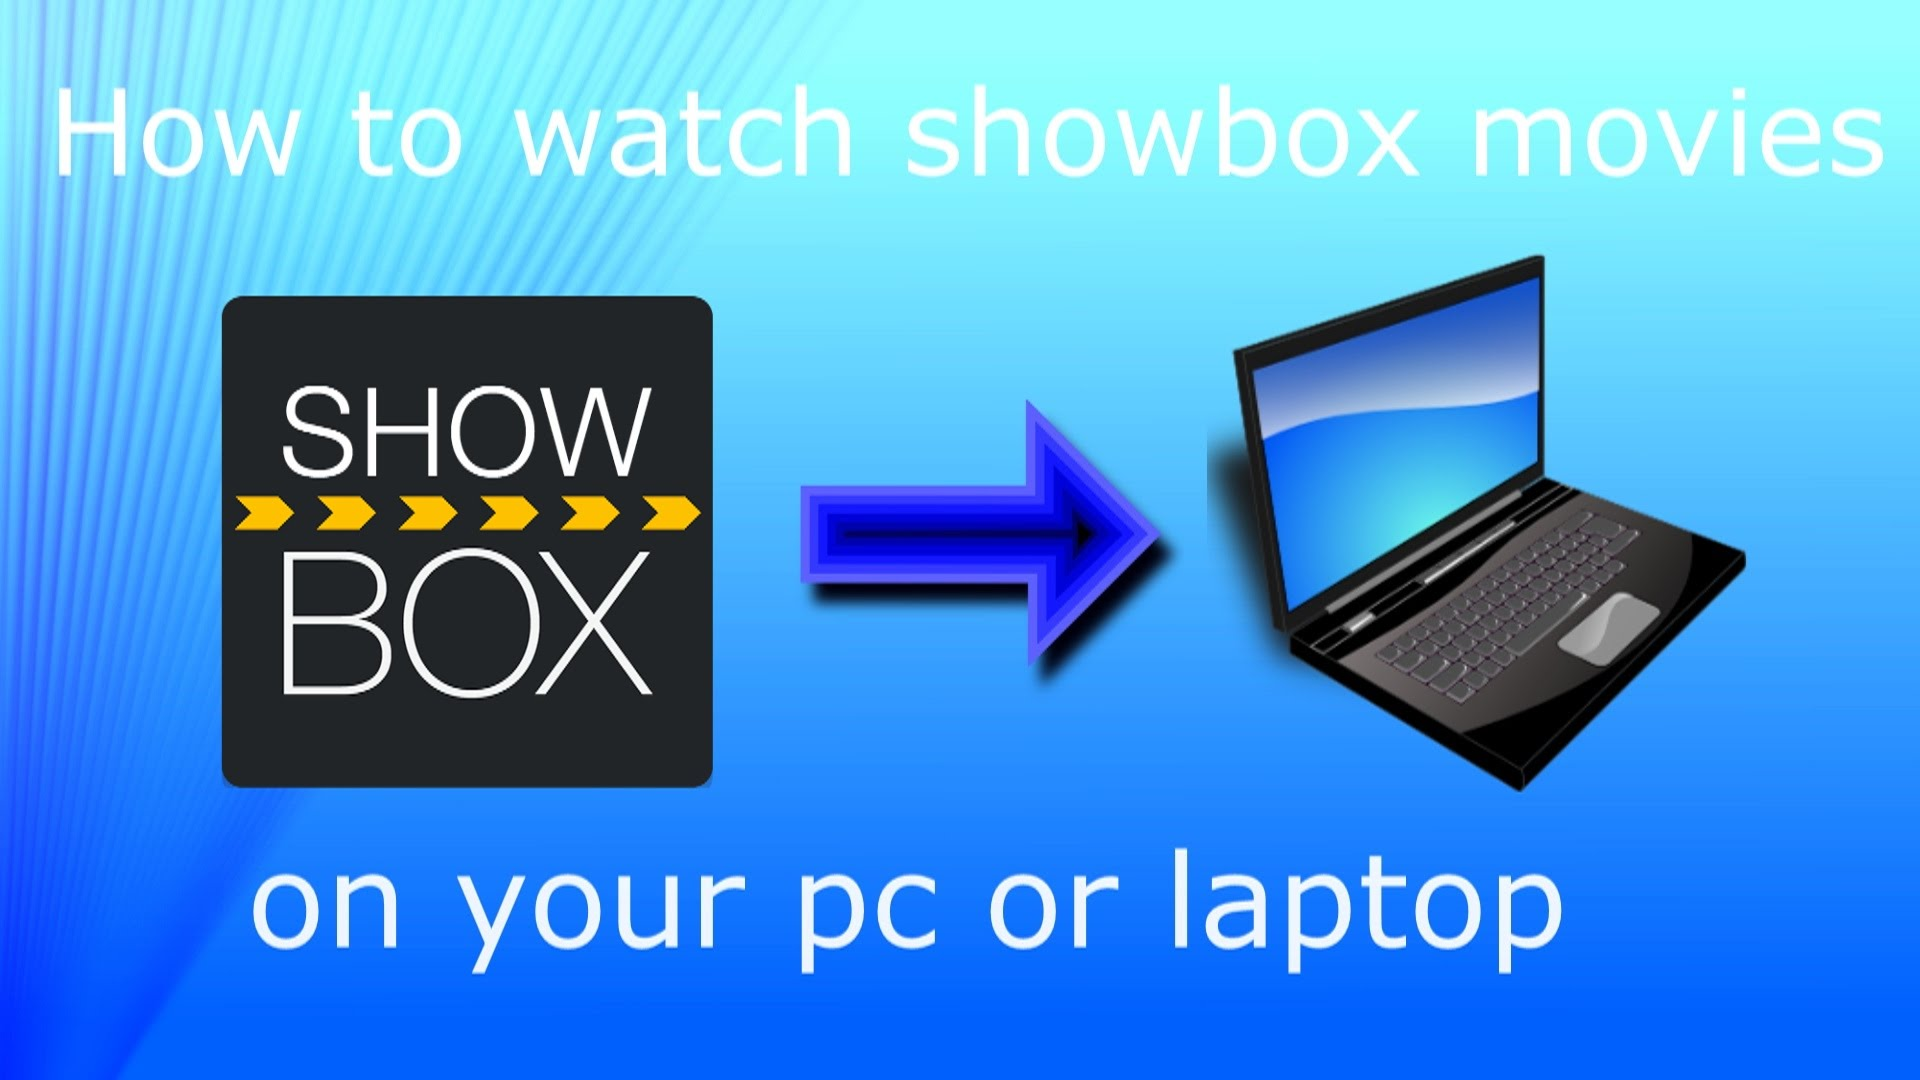 Showbox movies and tv shows on ios/android | How to Watch